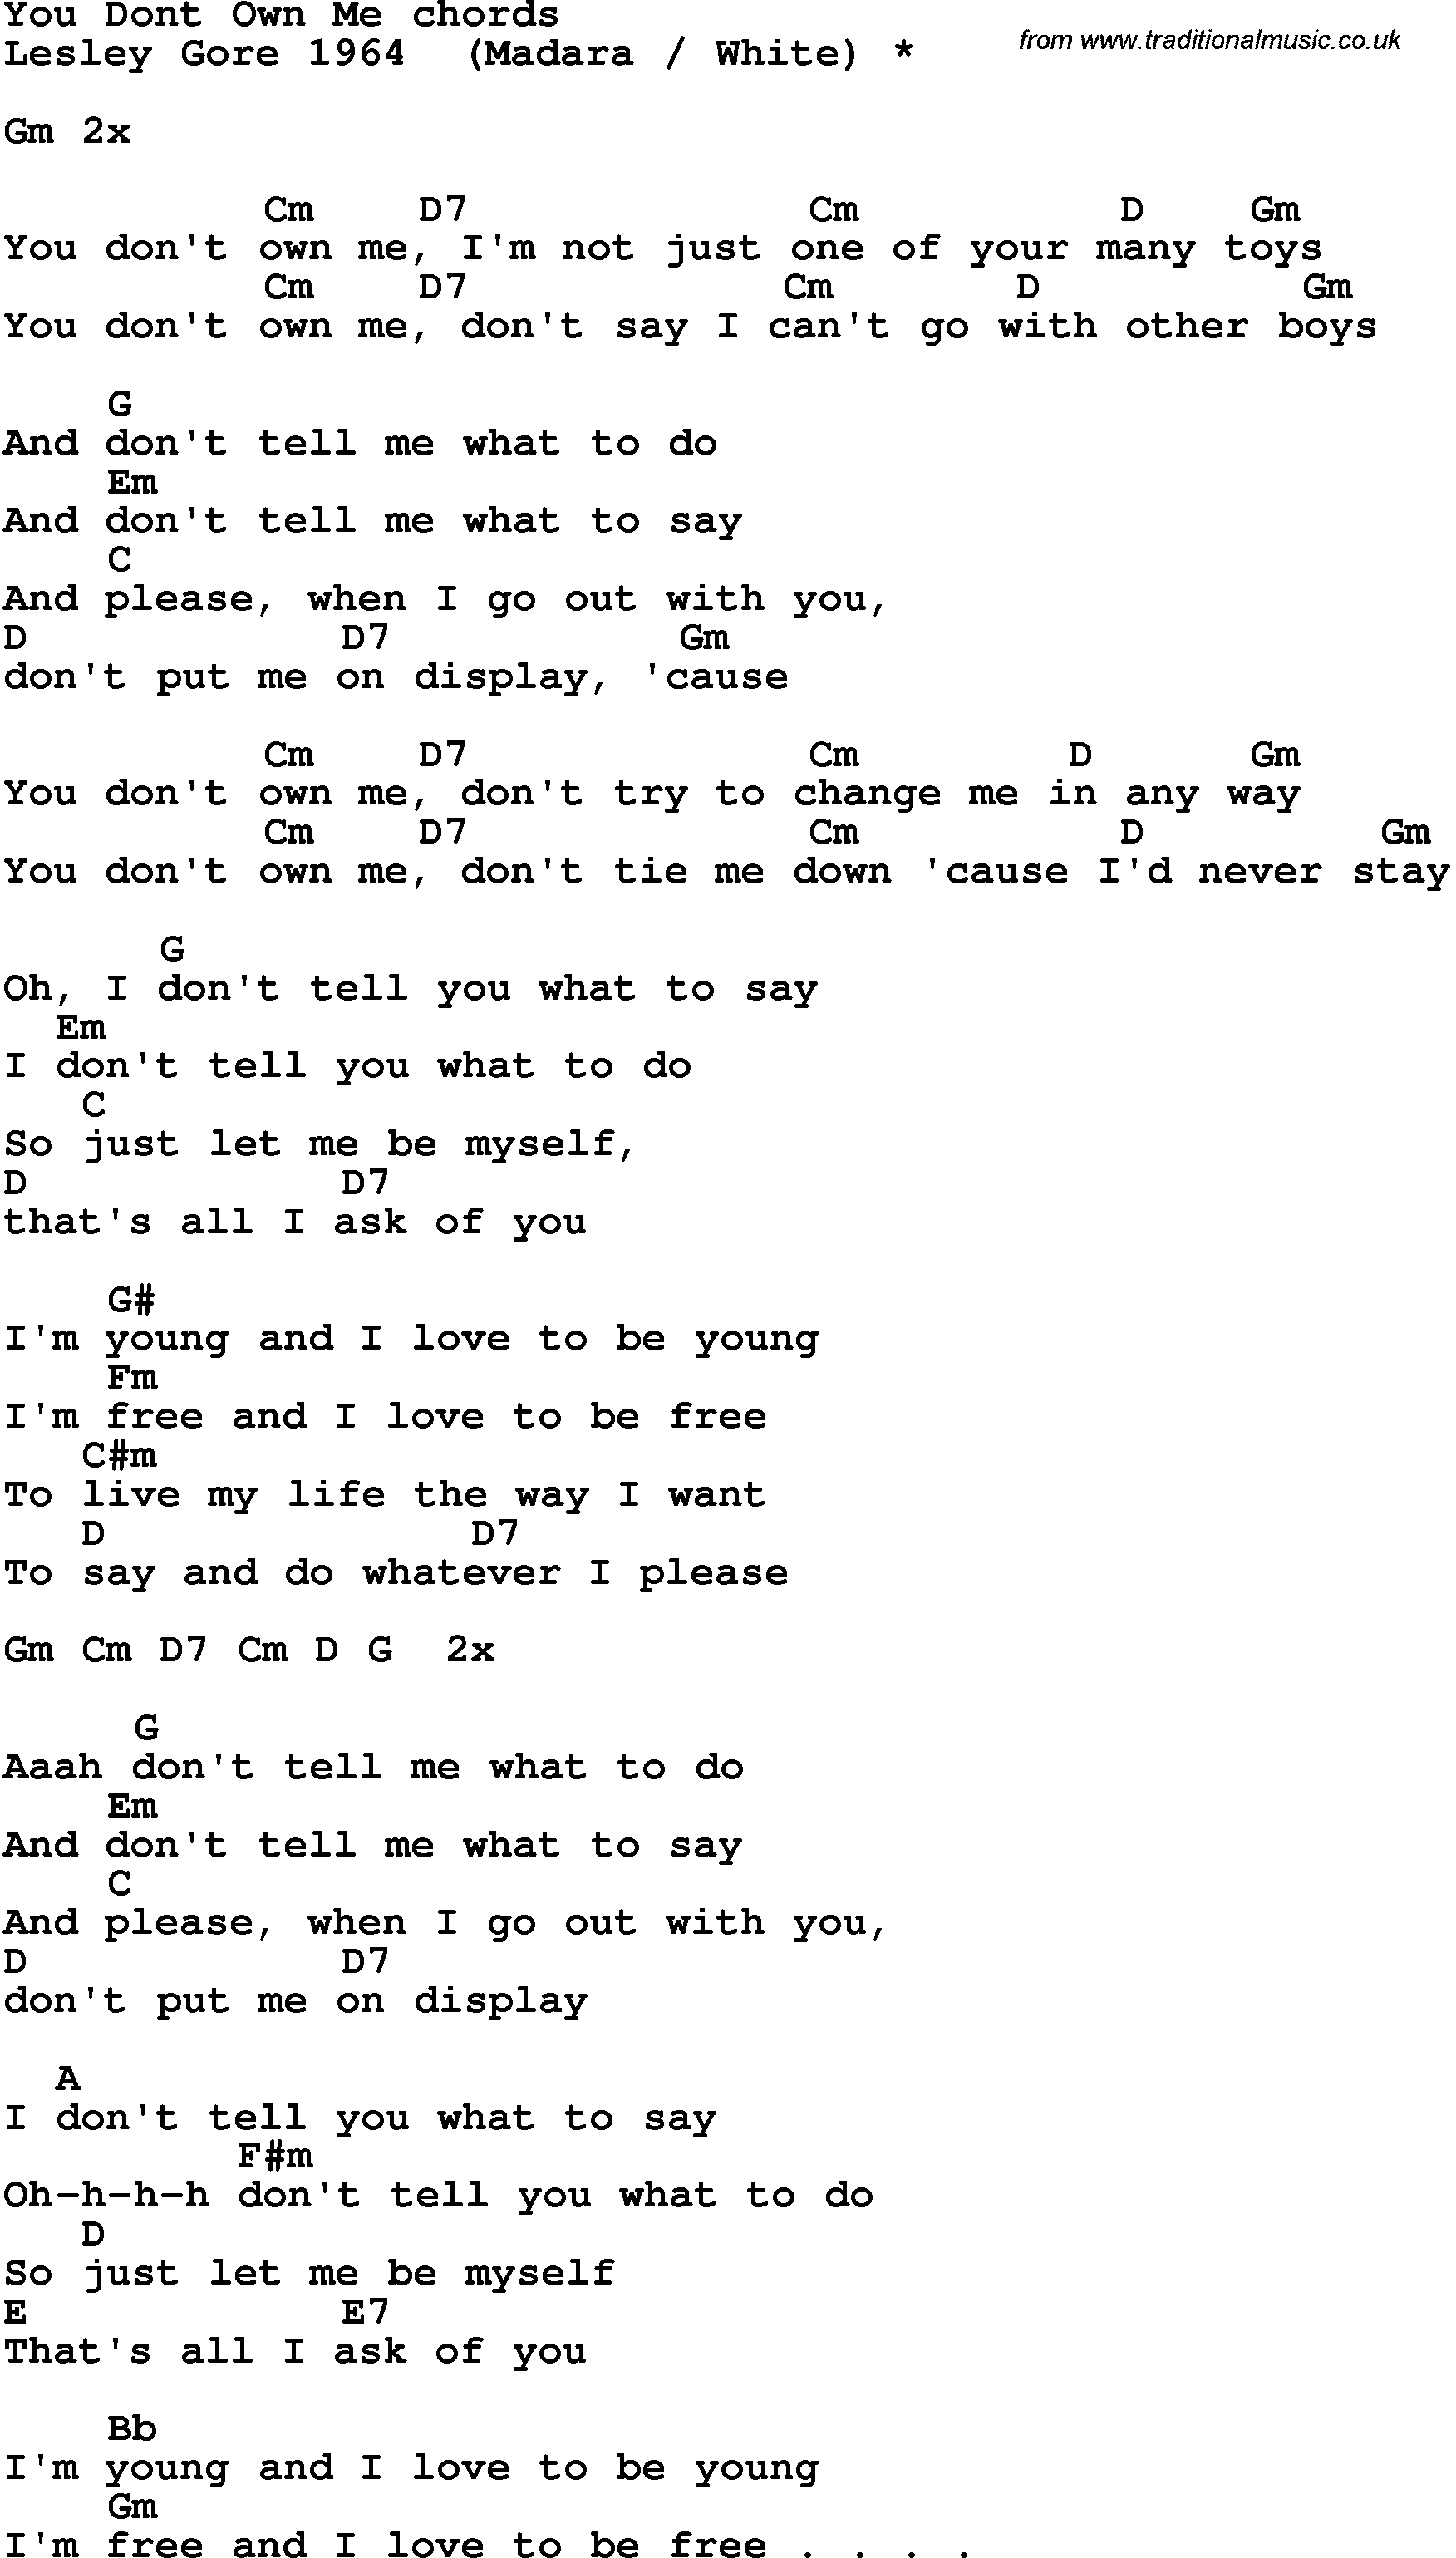 You Don't Own Me | Song Lyrics With Guitar Chords For You Don't Own - Free Printable Song Lyrics With Guitar Chords